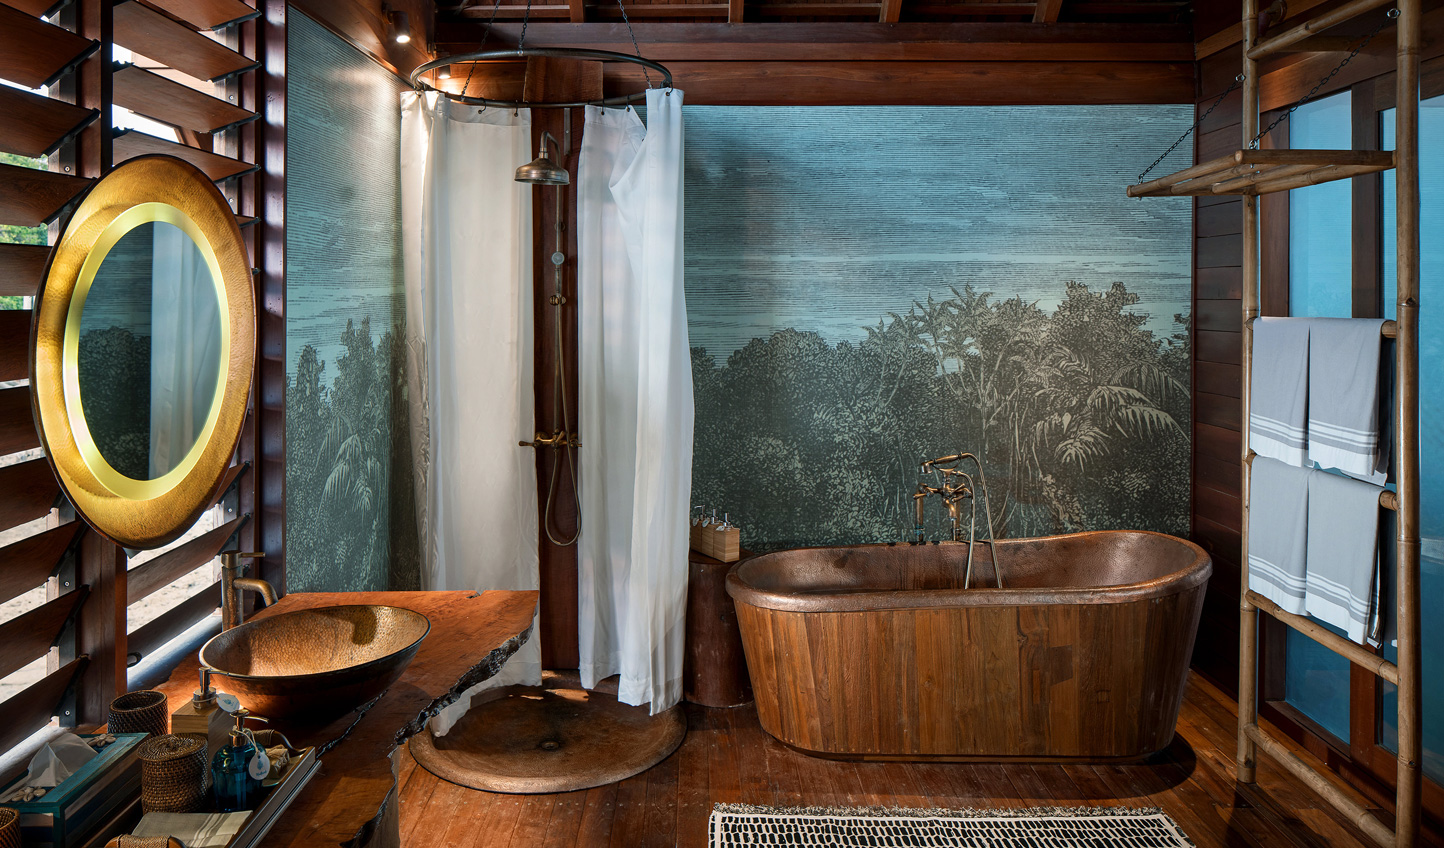 Luxurious bathrooms with a touch of the golden-age of exploration